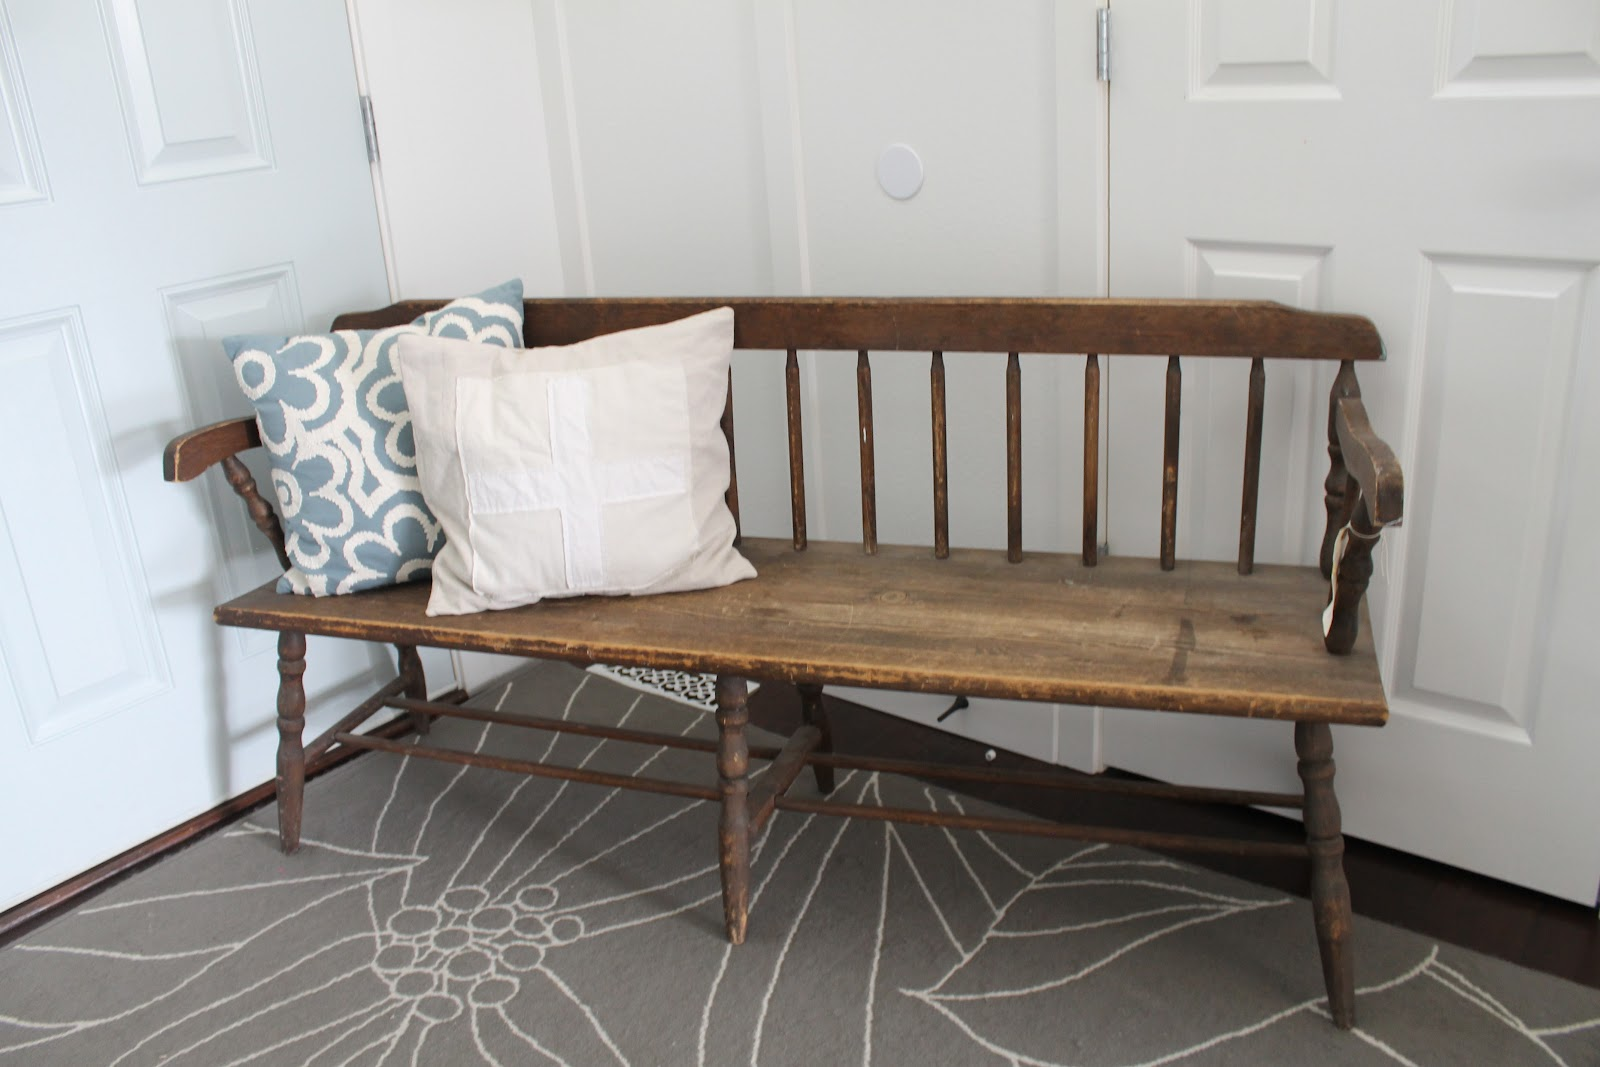 Antique Entryway Table whimsical treasures: vintage windsor wood bench